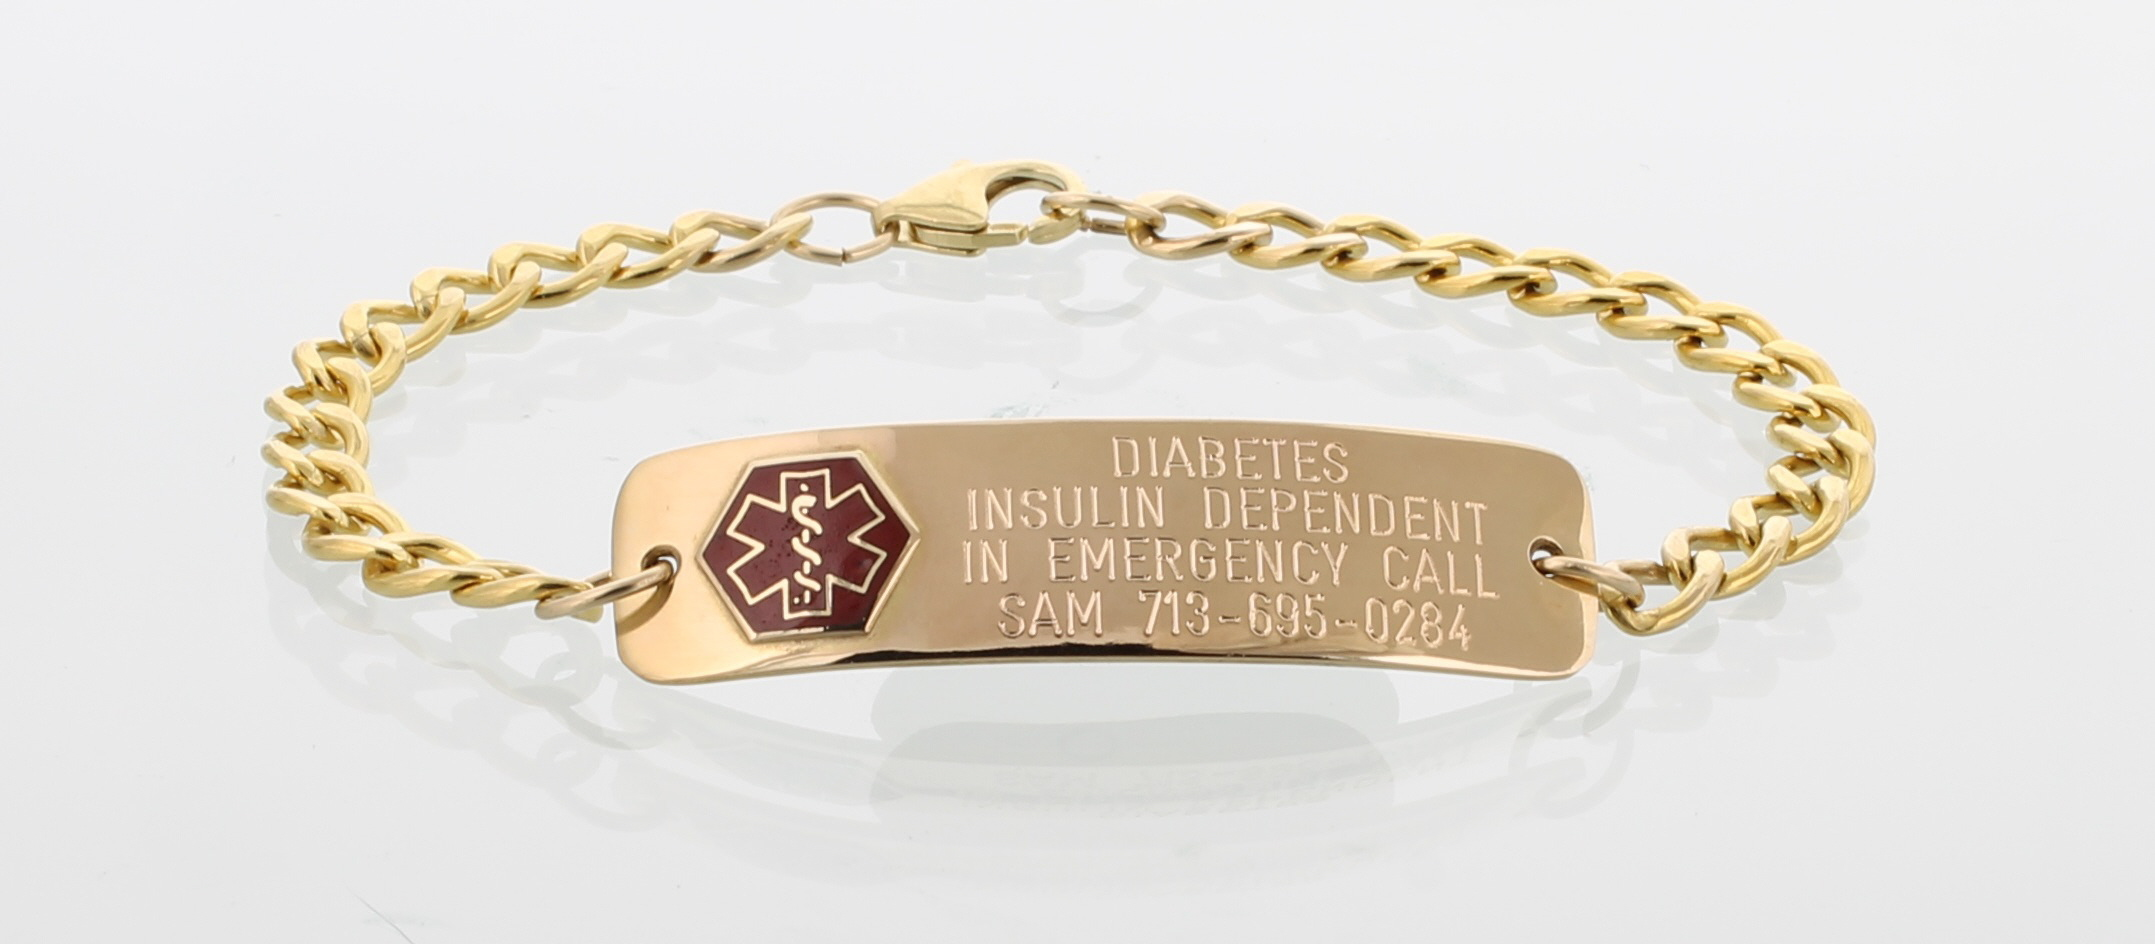 type set max petals id bracelet ma necklace medical matching diabetes and bwithlogoshp gift alert braceneckfront products